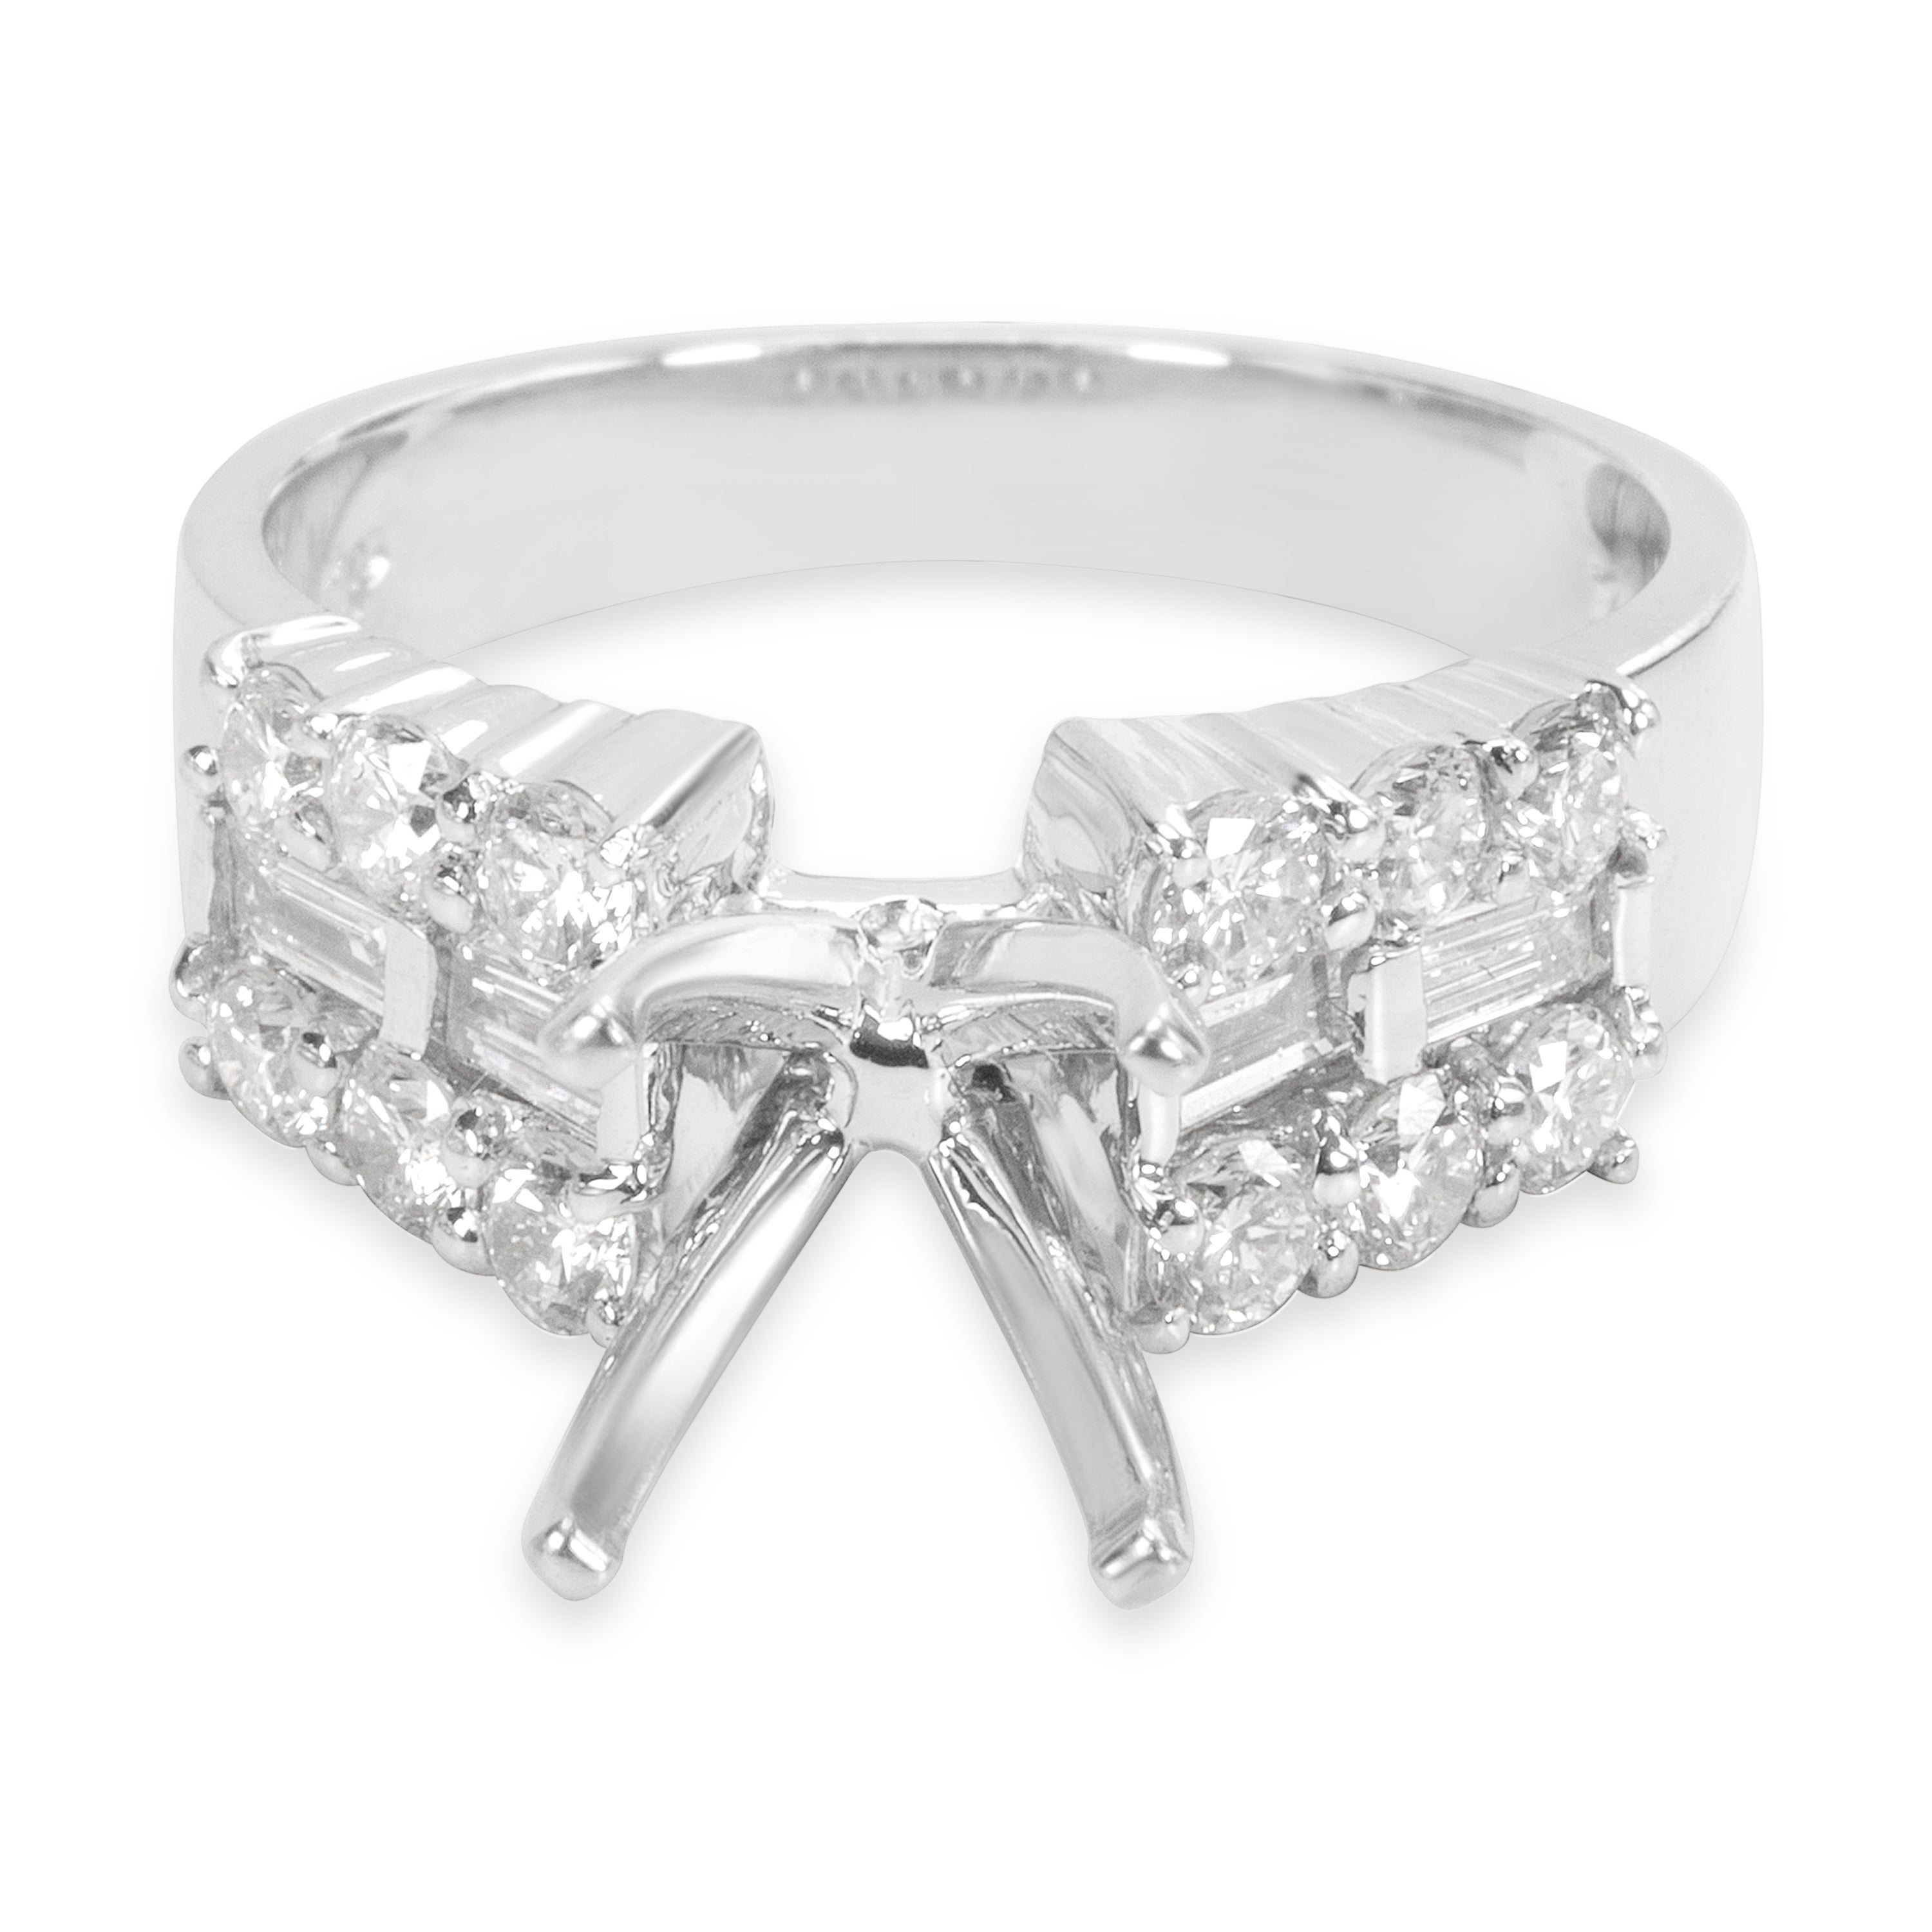 Pre Owned Diamond Engagement Ring Setting In 18kt White Gold 1 00 Ctw Free Shipping Today 23122408